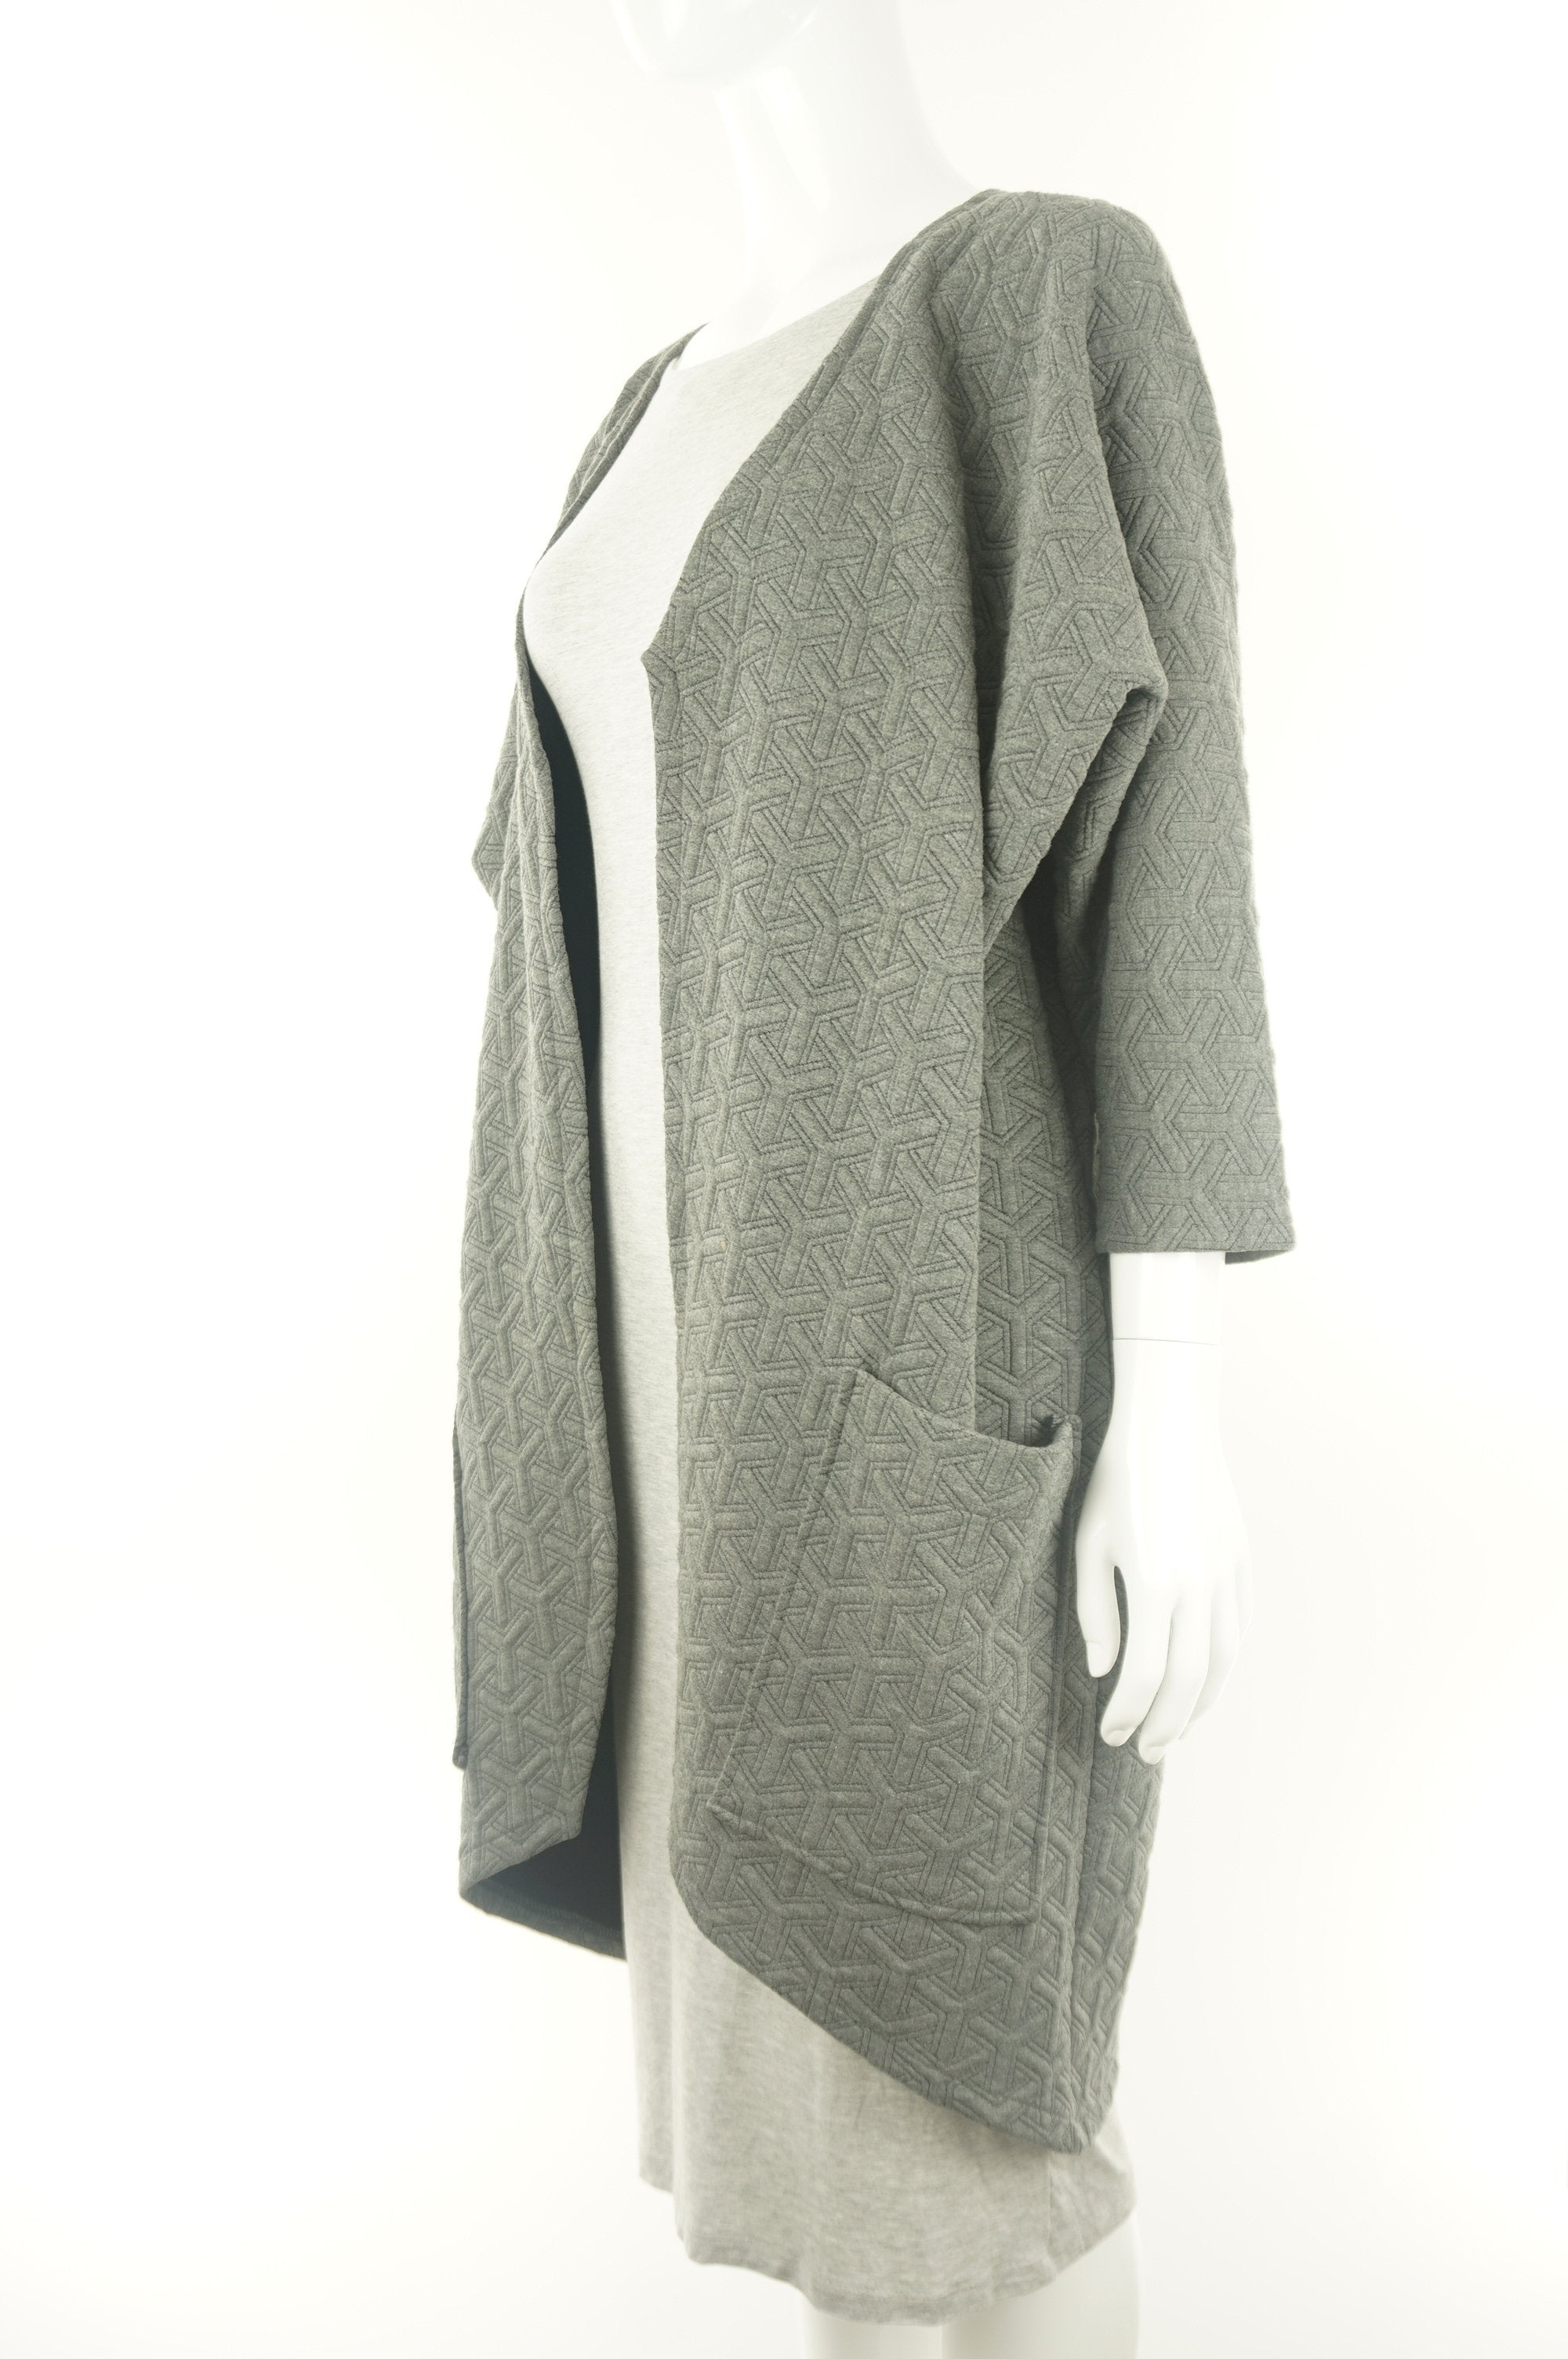 KAI&KLO Quilted Long Coat, Modern and minimal design. Made in Canada., Grey, Spandex, Rayon, polyester, women's Jackets & Coats, women's Grey Jackets & Coats, KAI&KLO women's Jackets & Coats, women's drape quilted coat, women's long warm flowy overcoat, faux suede waterfall sweater, women's long waterfall drape sweater, women's long drape outerwear